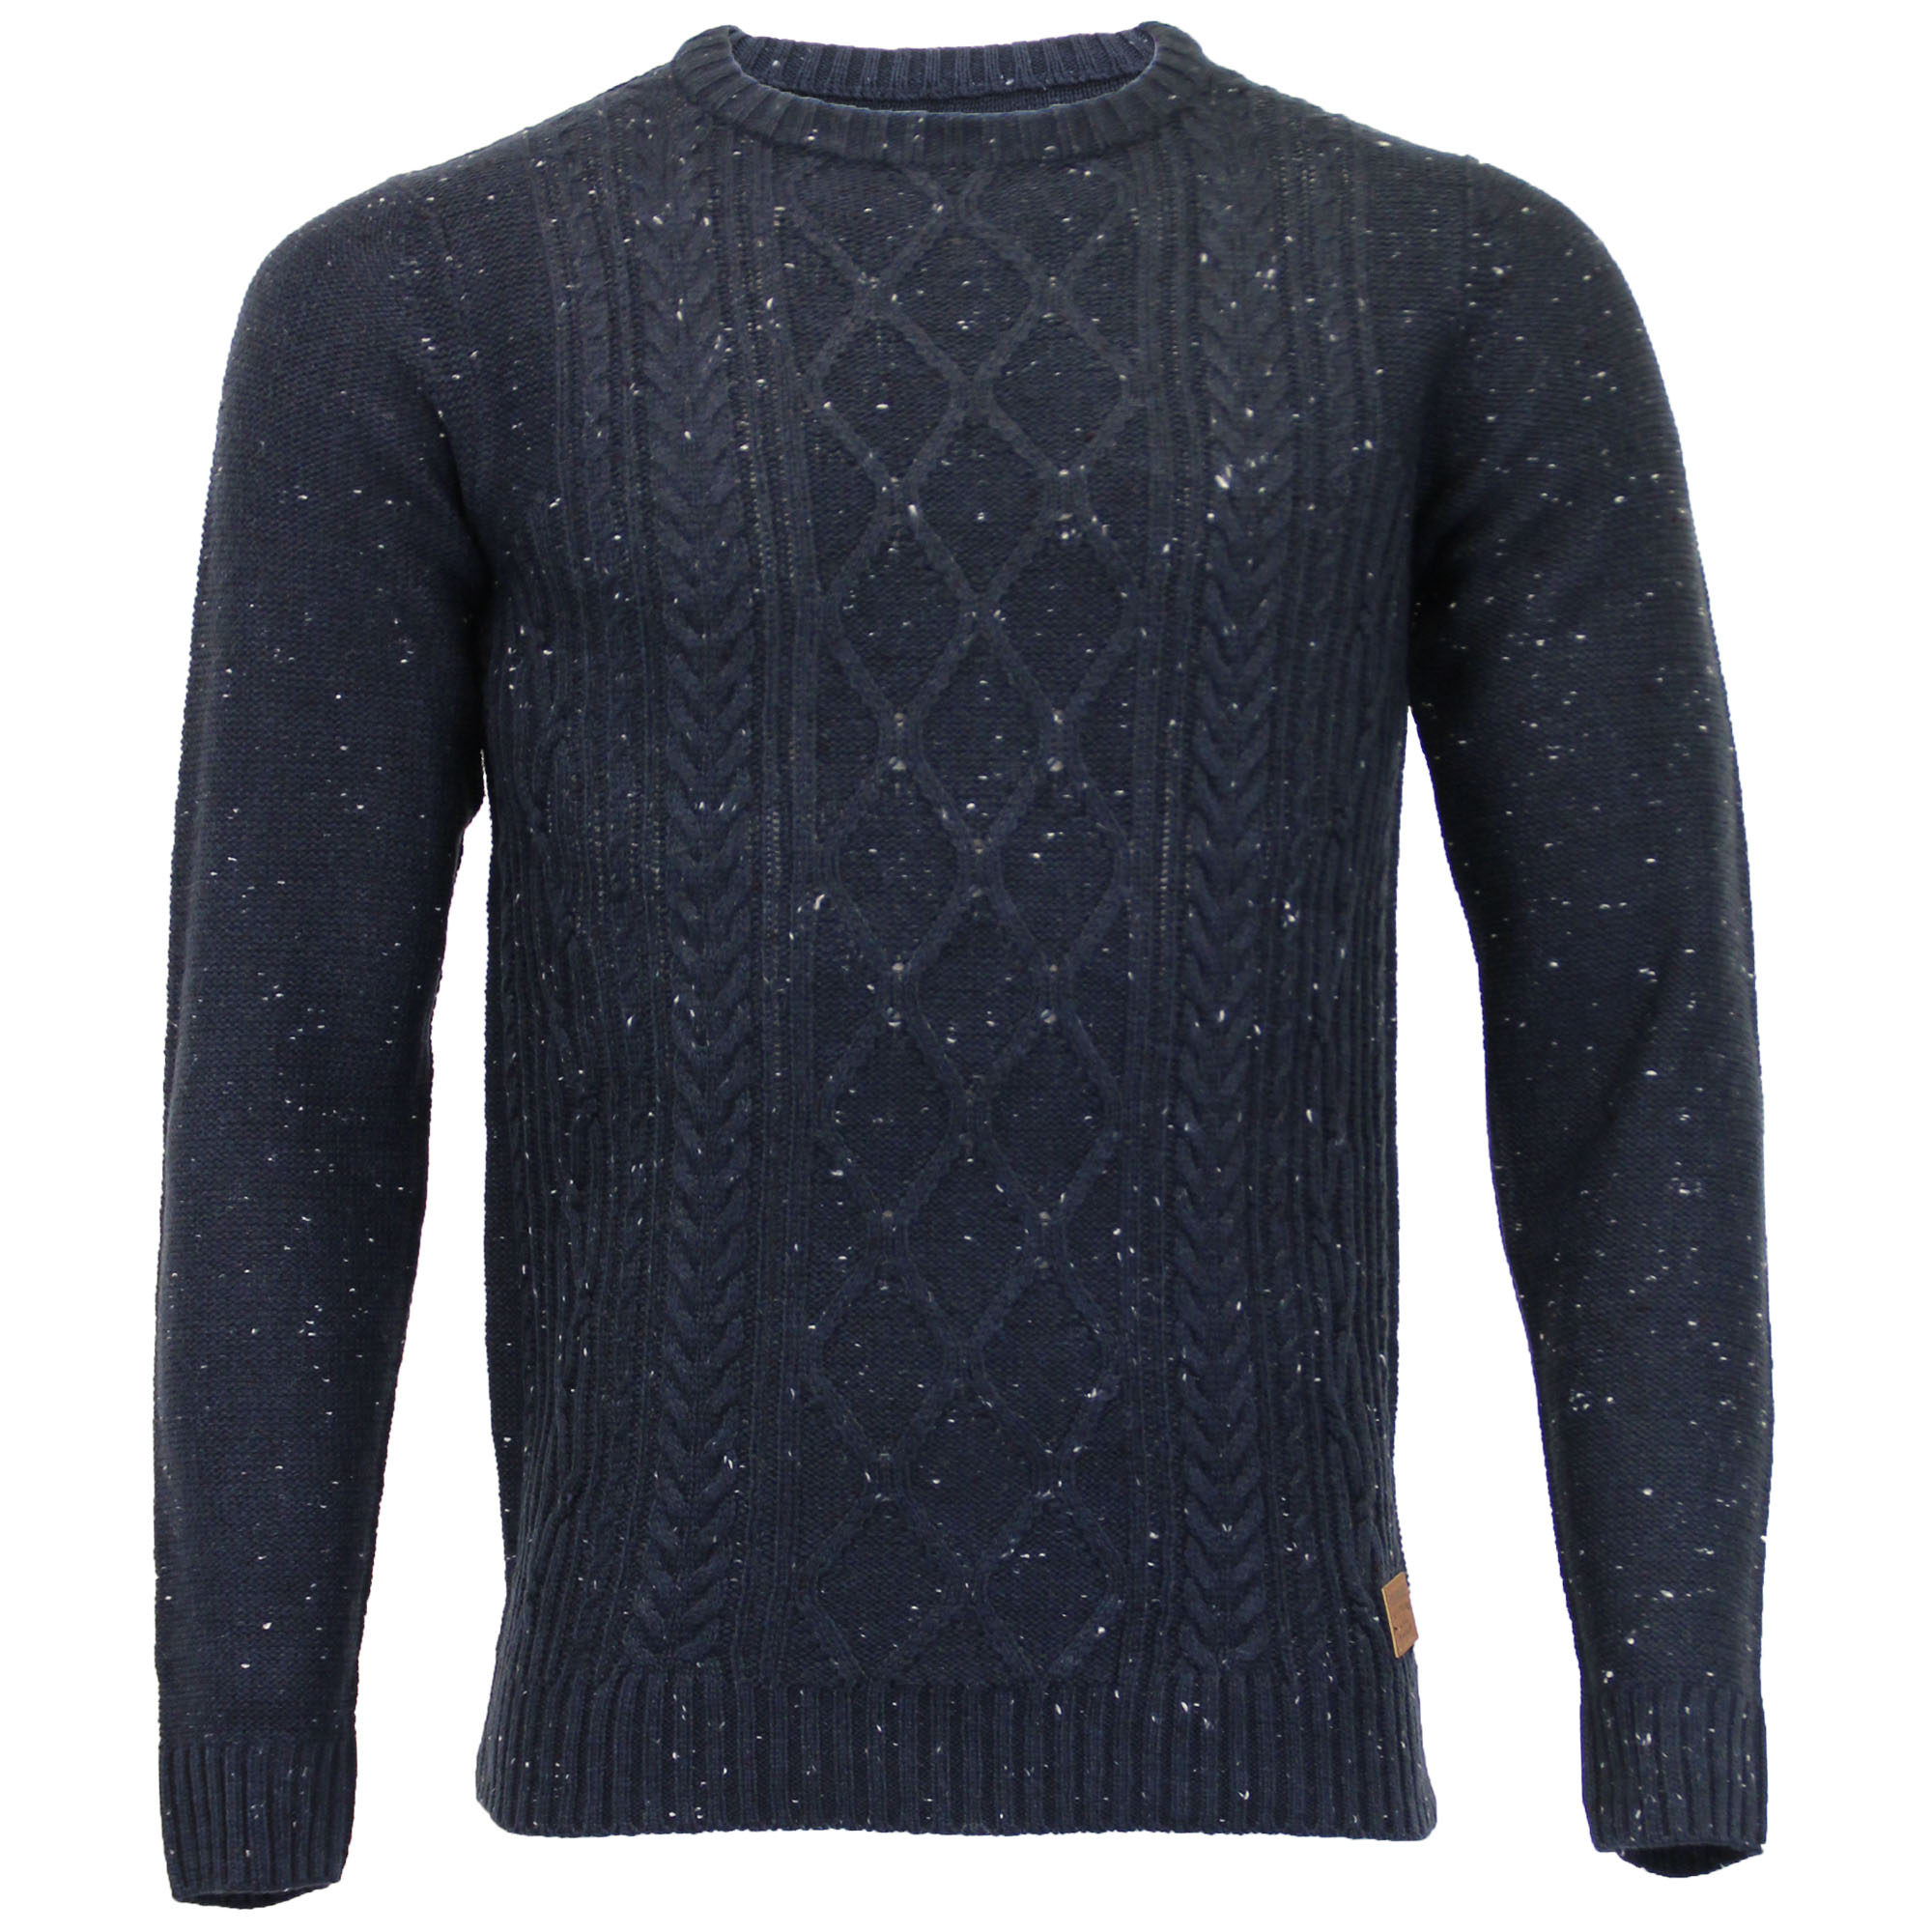 Mens-Wool-Mix-Jumper-Threadbare-Knitted-Sweater-Pullover-Top-Chunky-Zip-Winter thumbnail 29